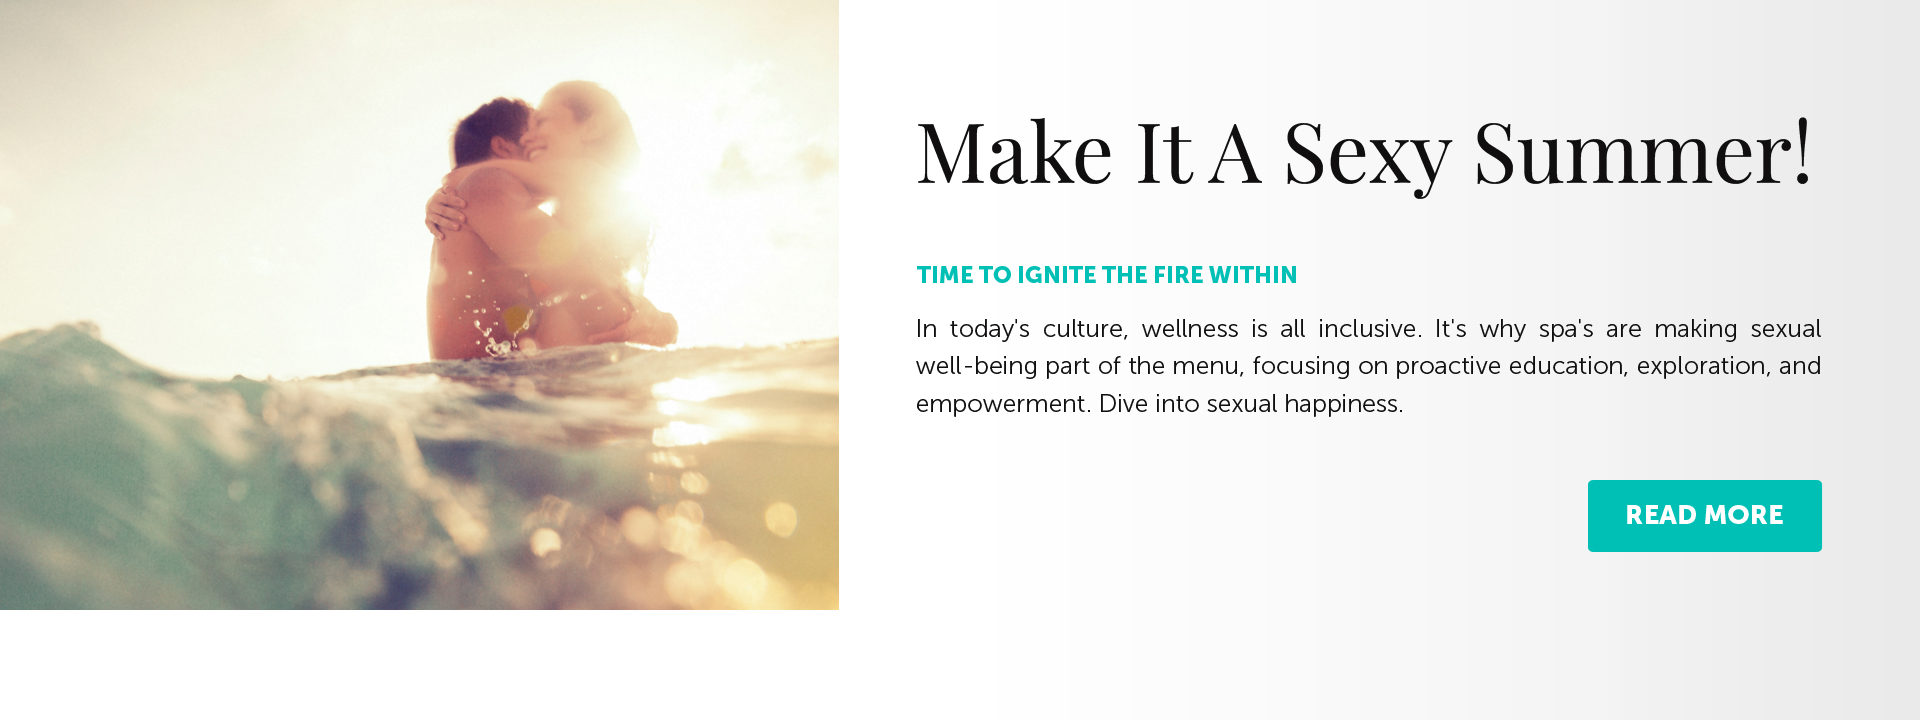 Time to ignite the fire within. In today's culture, wellness is all inclusive. It's why spa's are making sexual well-being part of the menu, focusing on proactive education, exploration, and empowerment. Dive into sexual happiness.